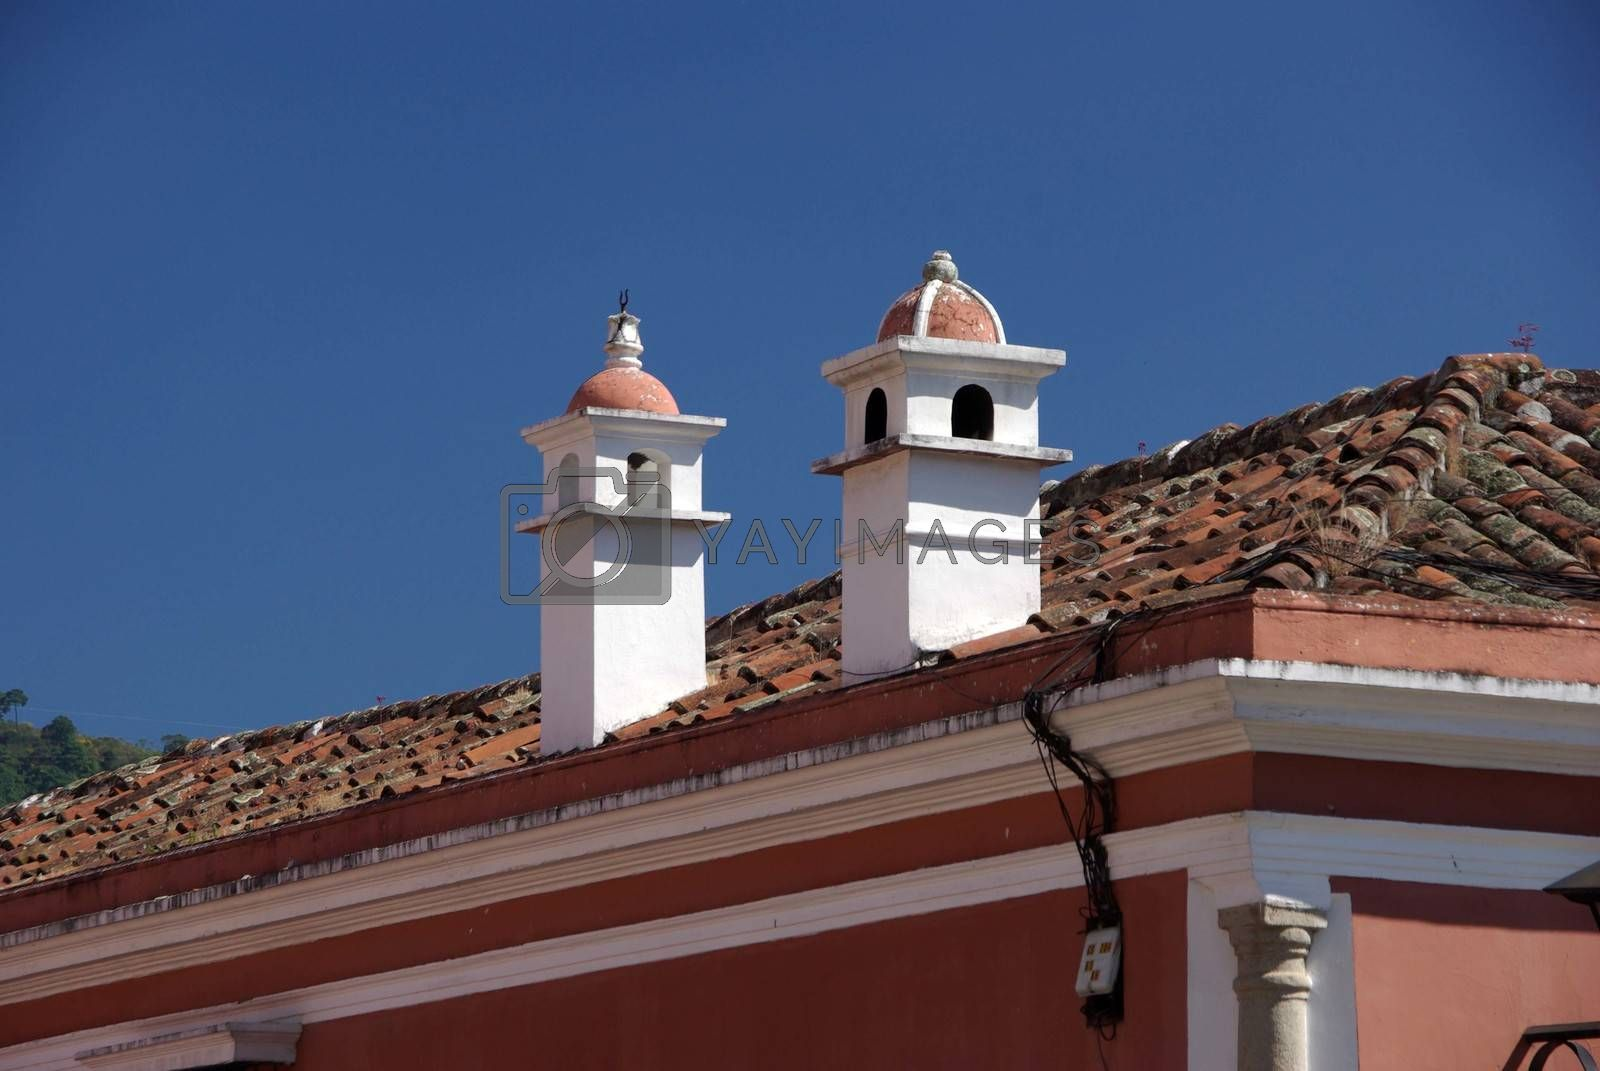 Roof and chimney in the ancient colonial city of Antigua in Guatemala, Central America